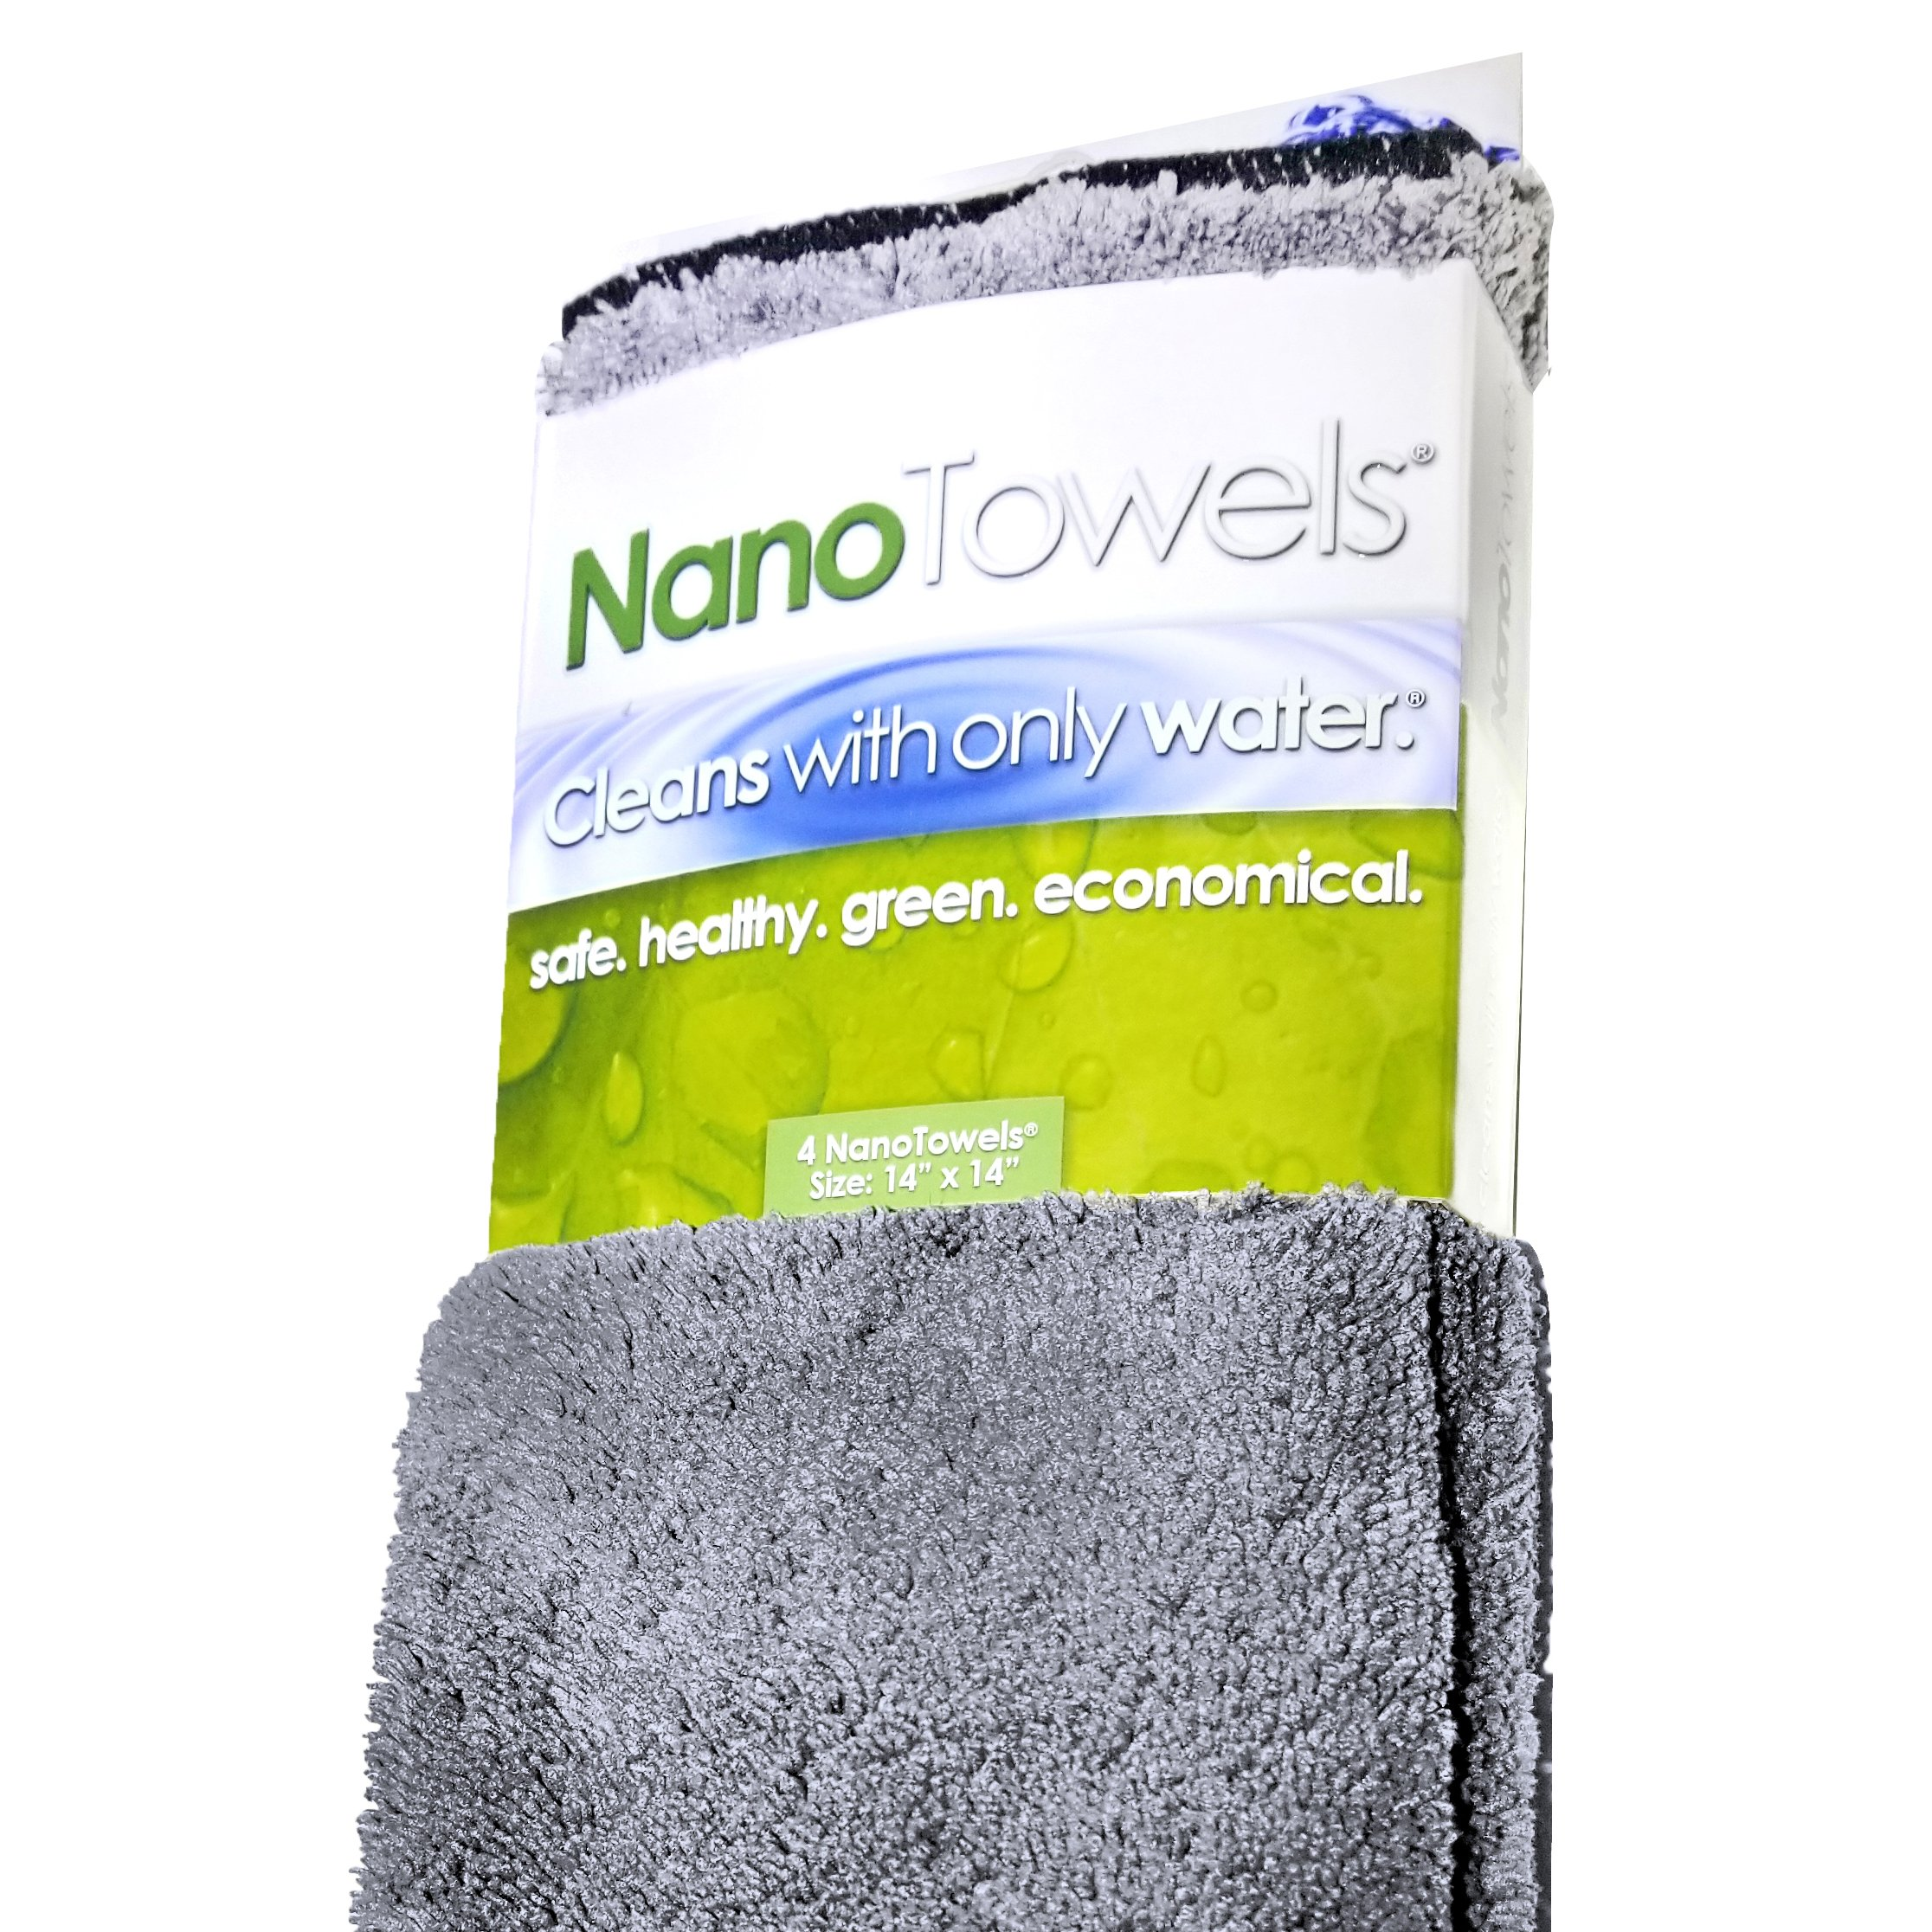 Life Miracle Nano Towels - Amazing Eco Fabric That Cleans Virtually Any Surface With Only Water. No More Paper Towels Or Toxic Chemicals. (Grey) by Life Miracle